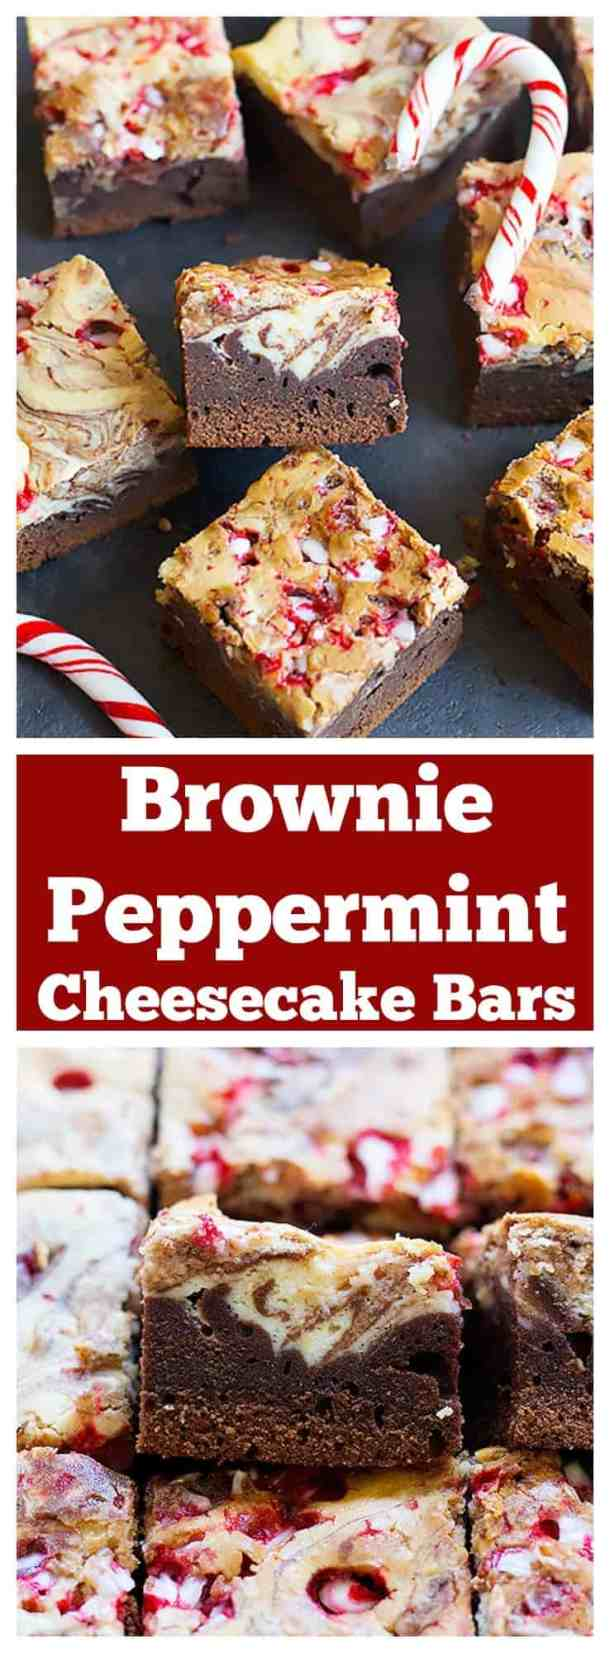 These Brownie Peppermint Cheesecake Bars are a combination of two favorite desserts with a holiday twist. Fudgy brownies topped with creamy peppermint cheesecake, yum!